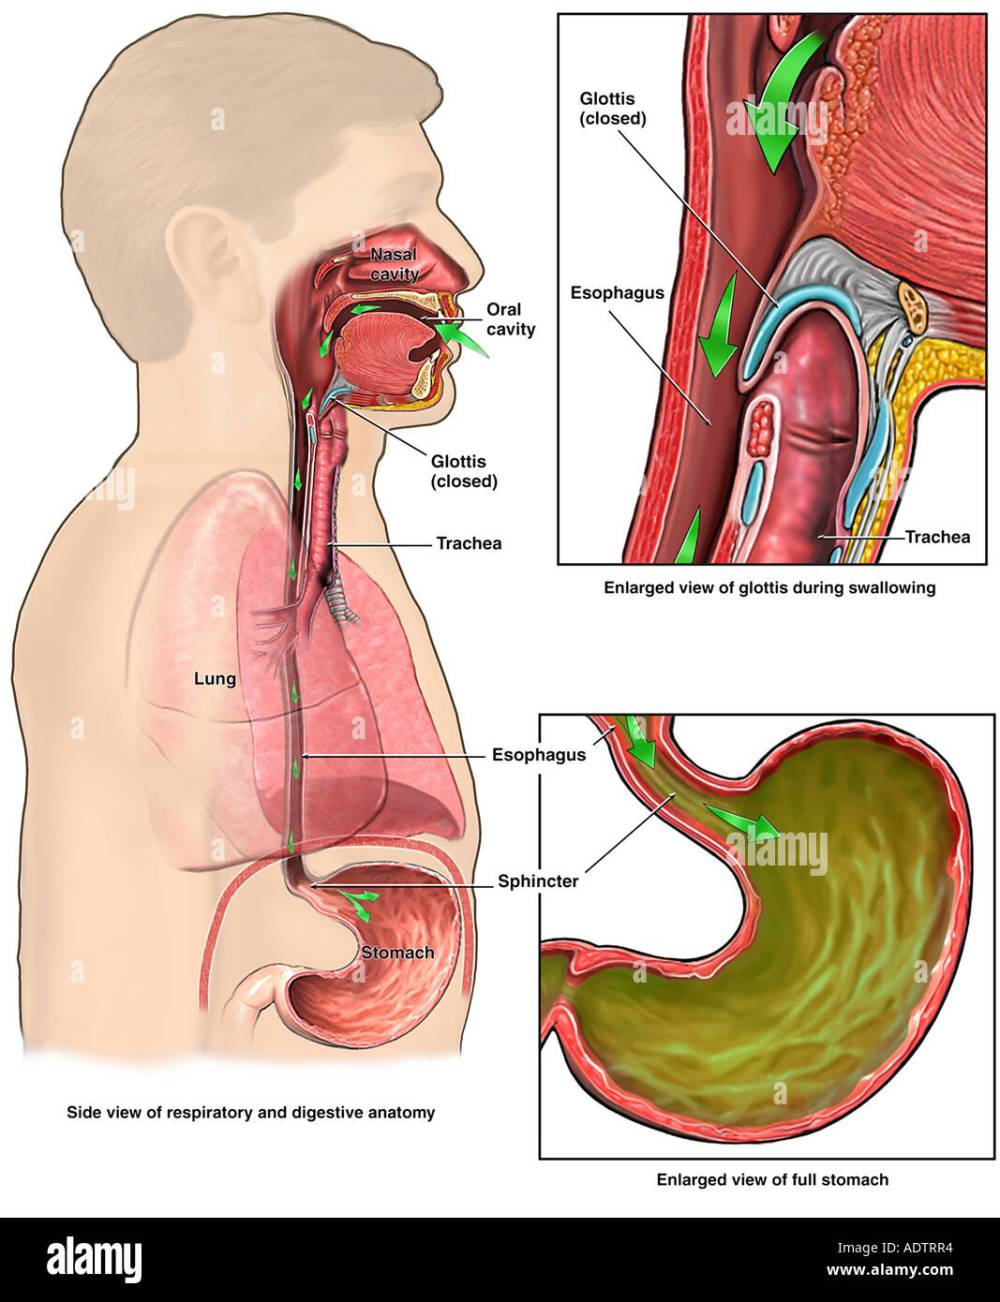 medium resolution of anatomy of the upper digestive system stock image